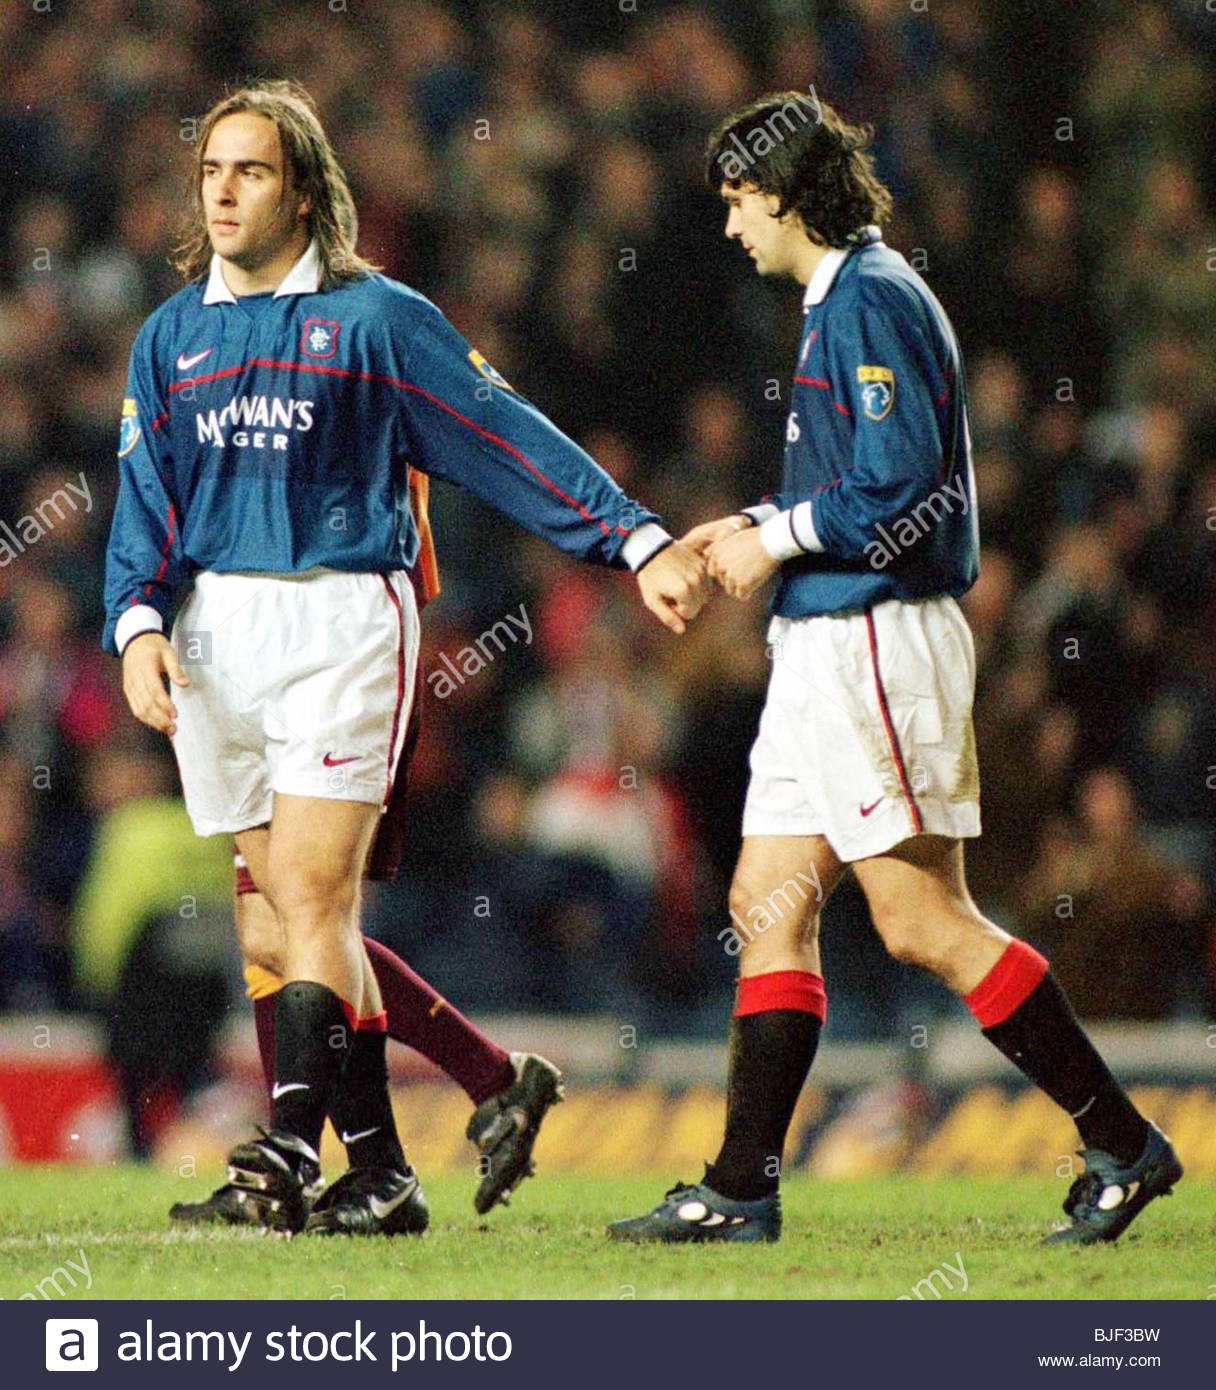 17/02/98 TENNENT'S SCOTTISH CUP 4TH RND REPLAY RANGERS V MOTHERWELL (3-0) IBROX - GLASGOW Rangers' Marco - Stock Image